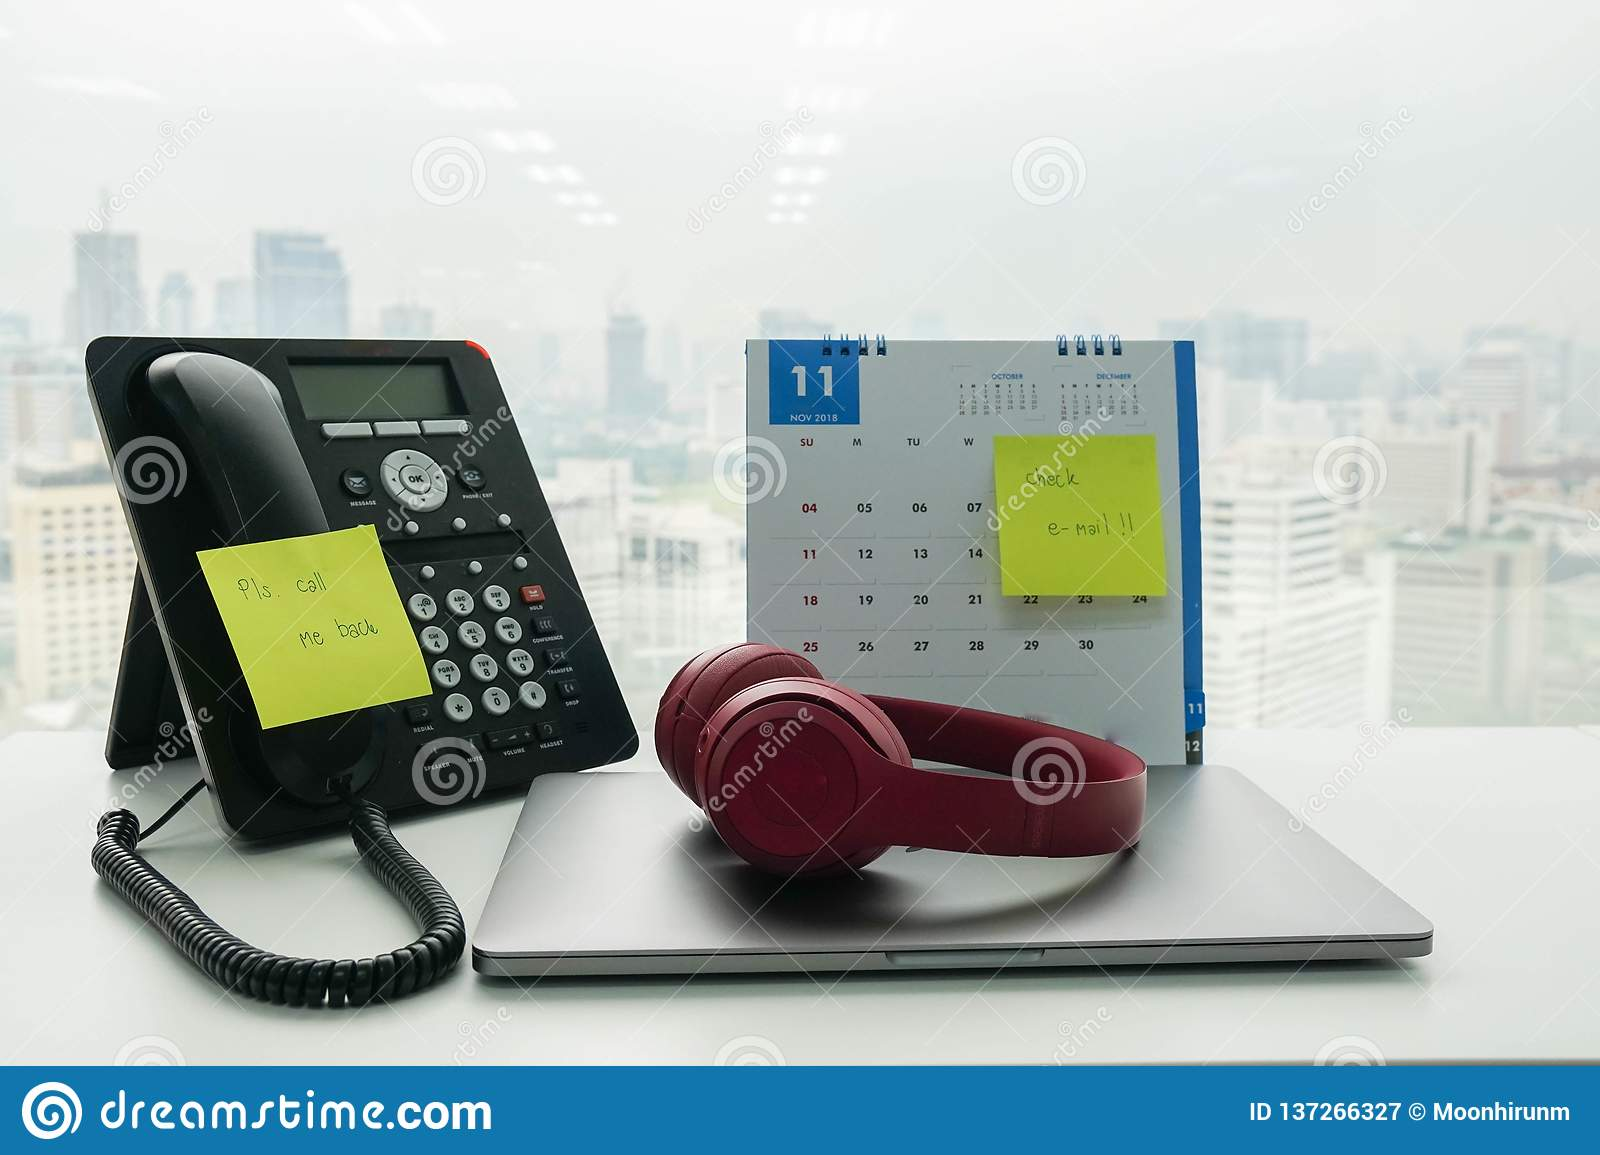 Stick note call back message and check e-mail on IP phone and November calendar for employee reminder with notebook computer an